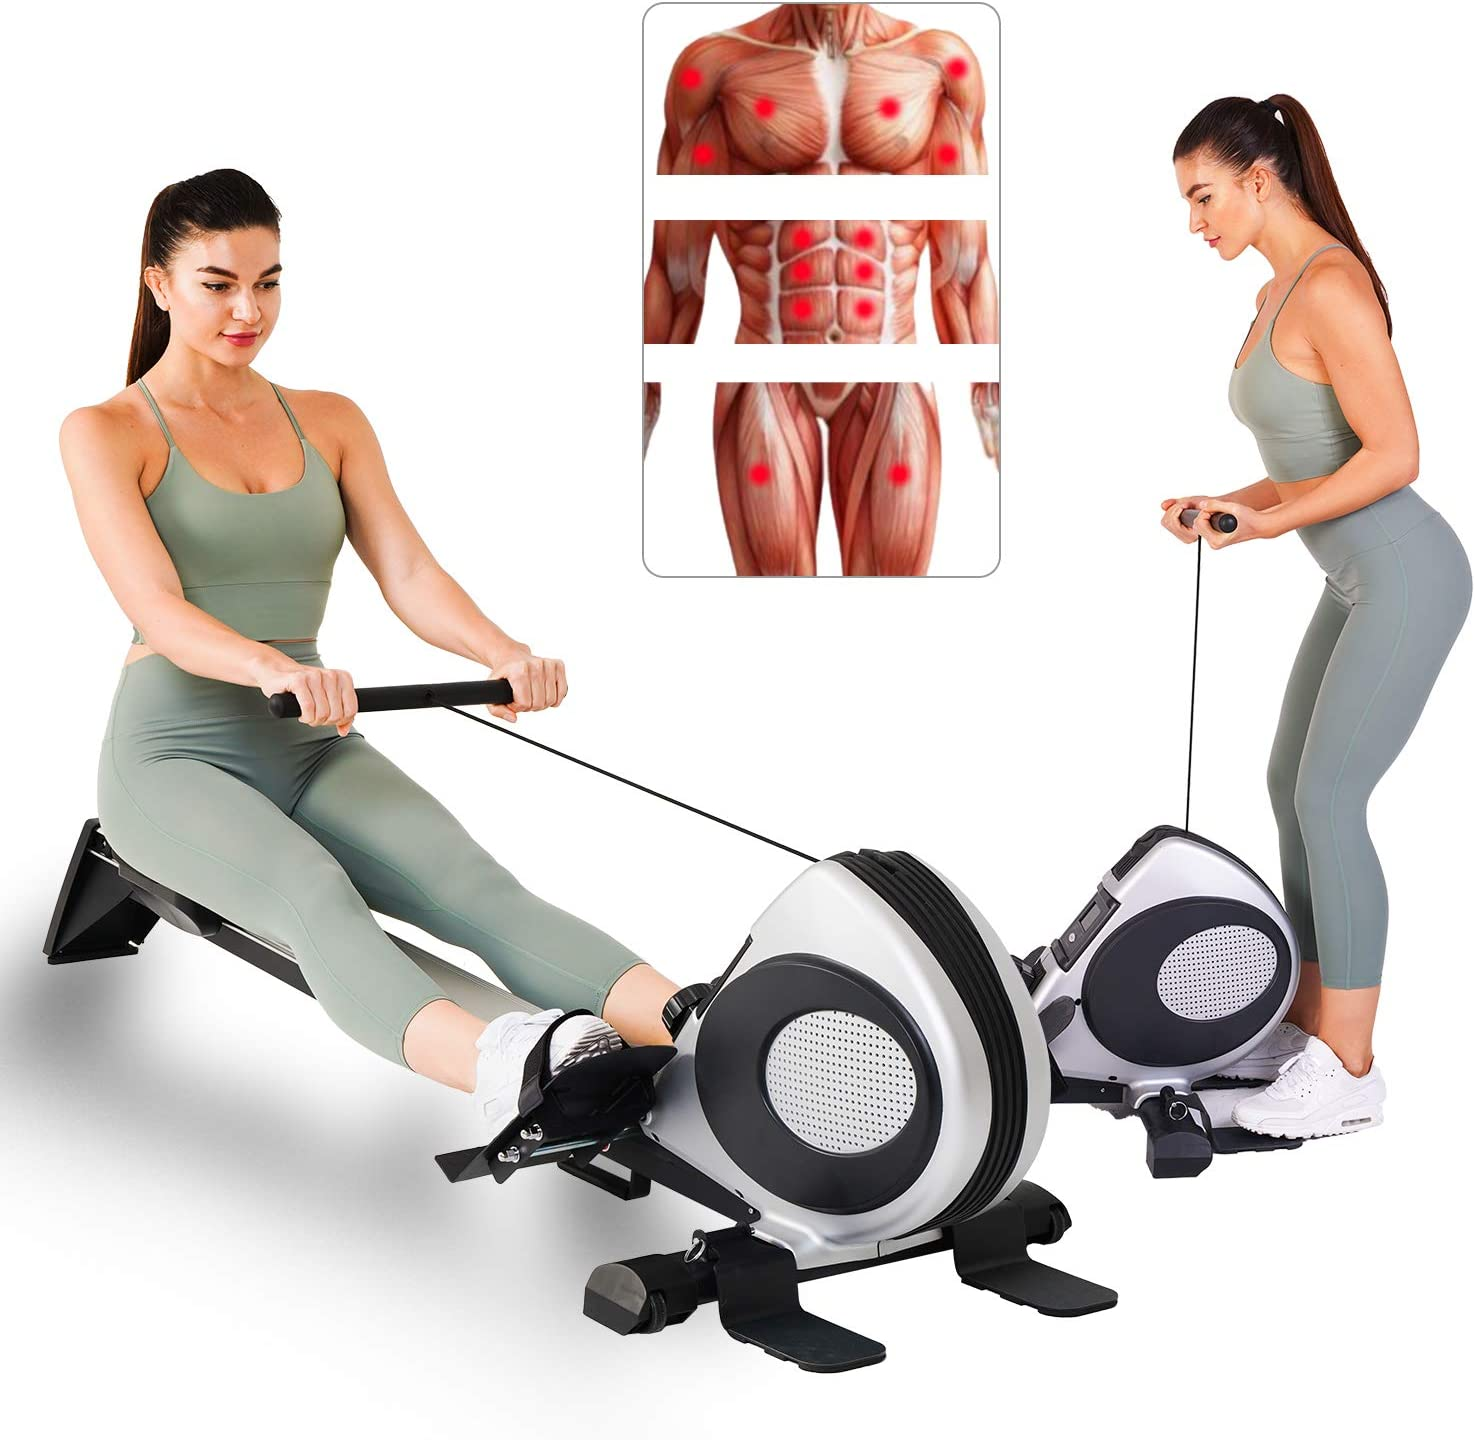 Magnetic Rowing Machine Foldable Rowing Machines for Home Use Full Body Workout Machine Quiet Adjustable Resistance Exercise Equipment w/LCD Monitor, R60